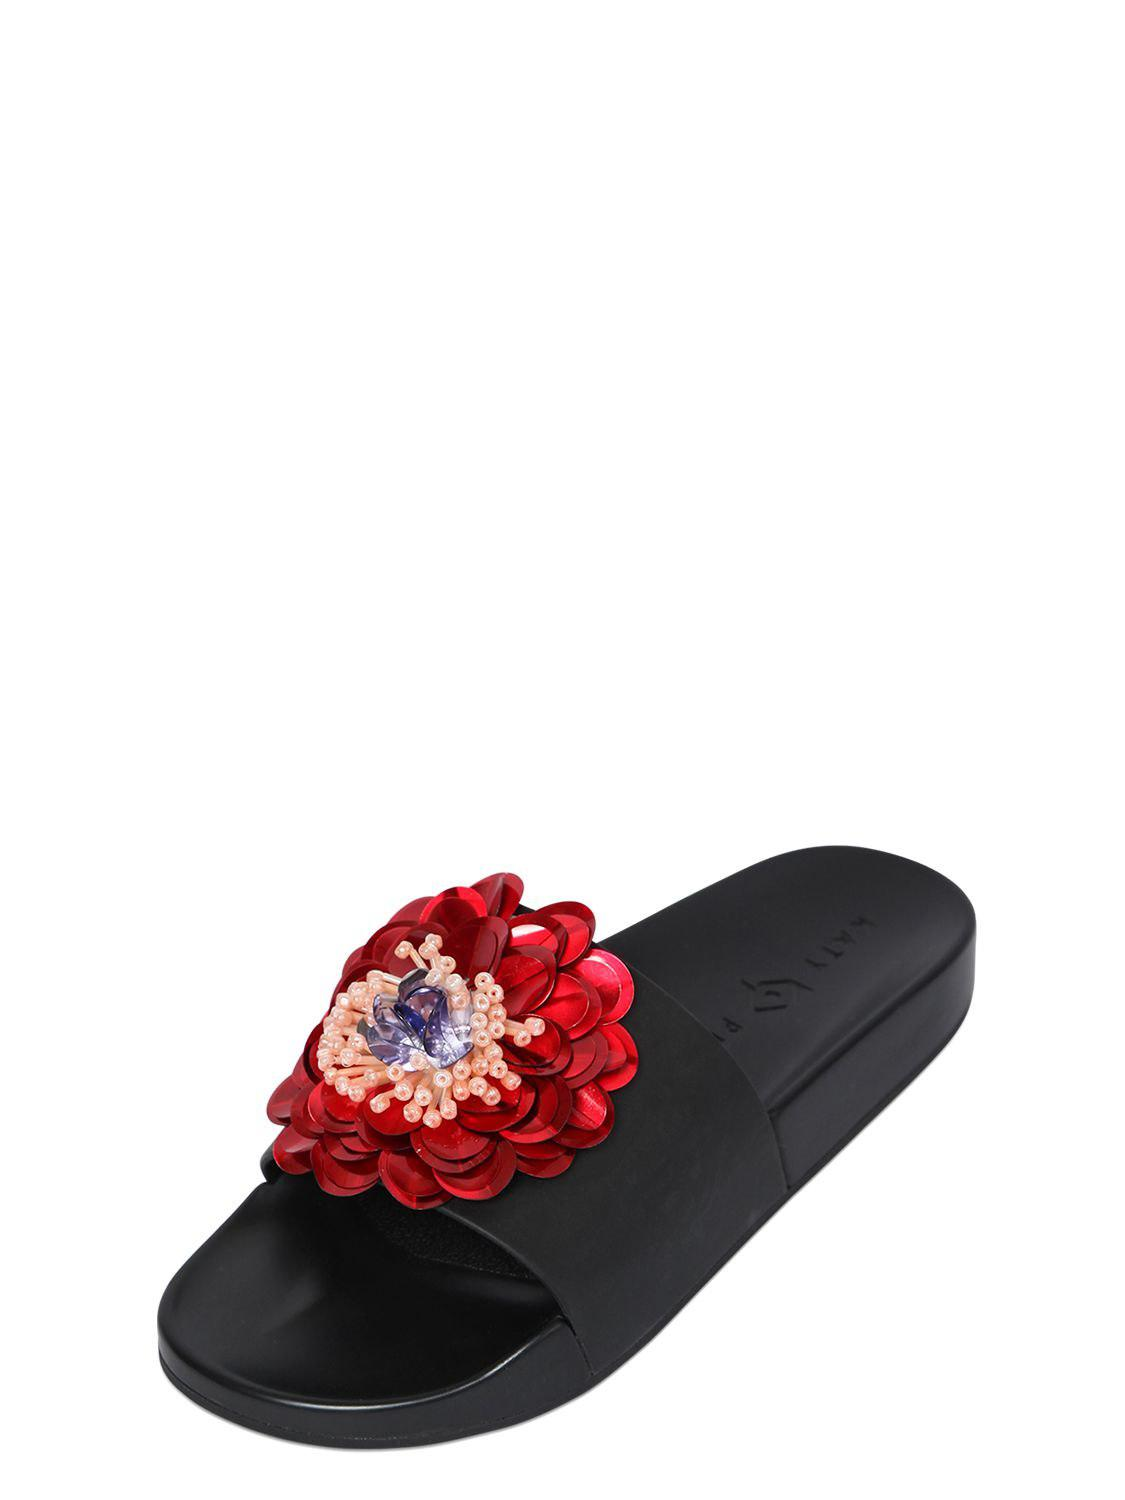 Katy perry 20MM DARCE FLOWER RUBBER SLIDE SANDALS kQmKUzy